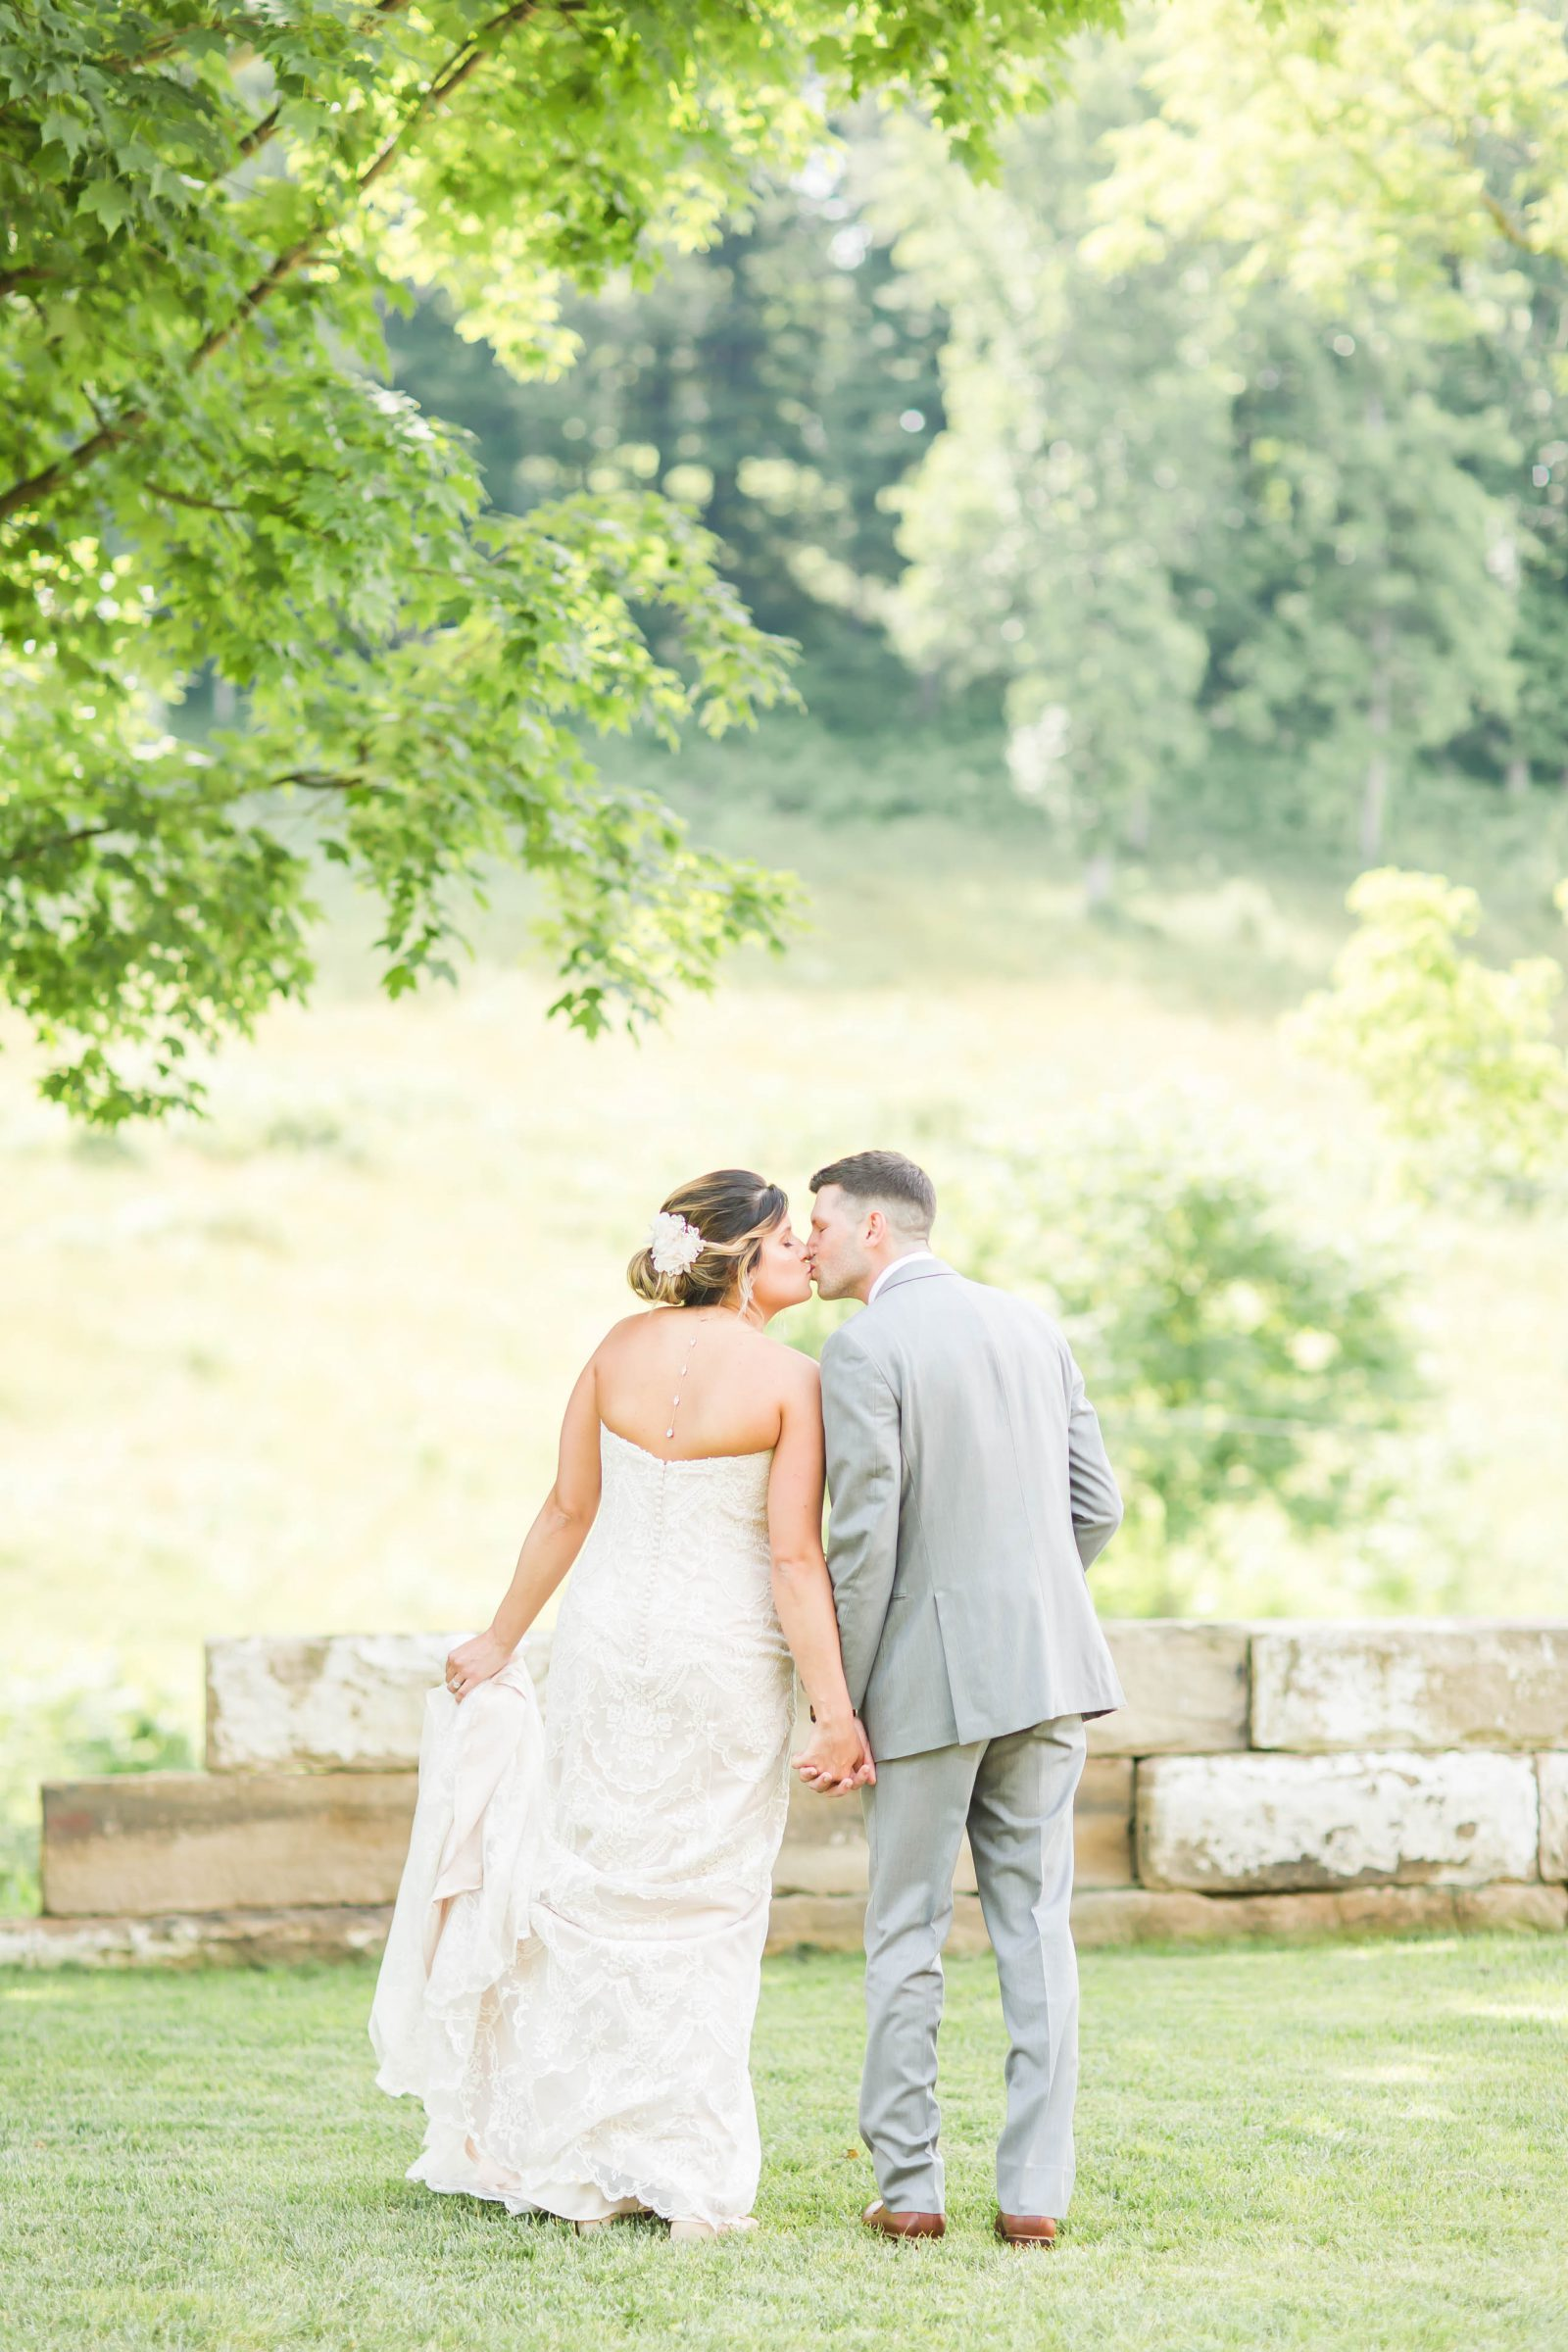 rivercrest-farm-summer-wedding-loren-jackson-photography-49